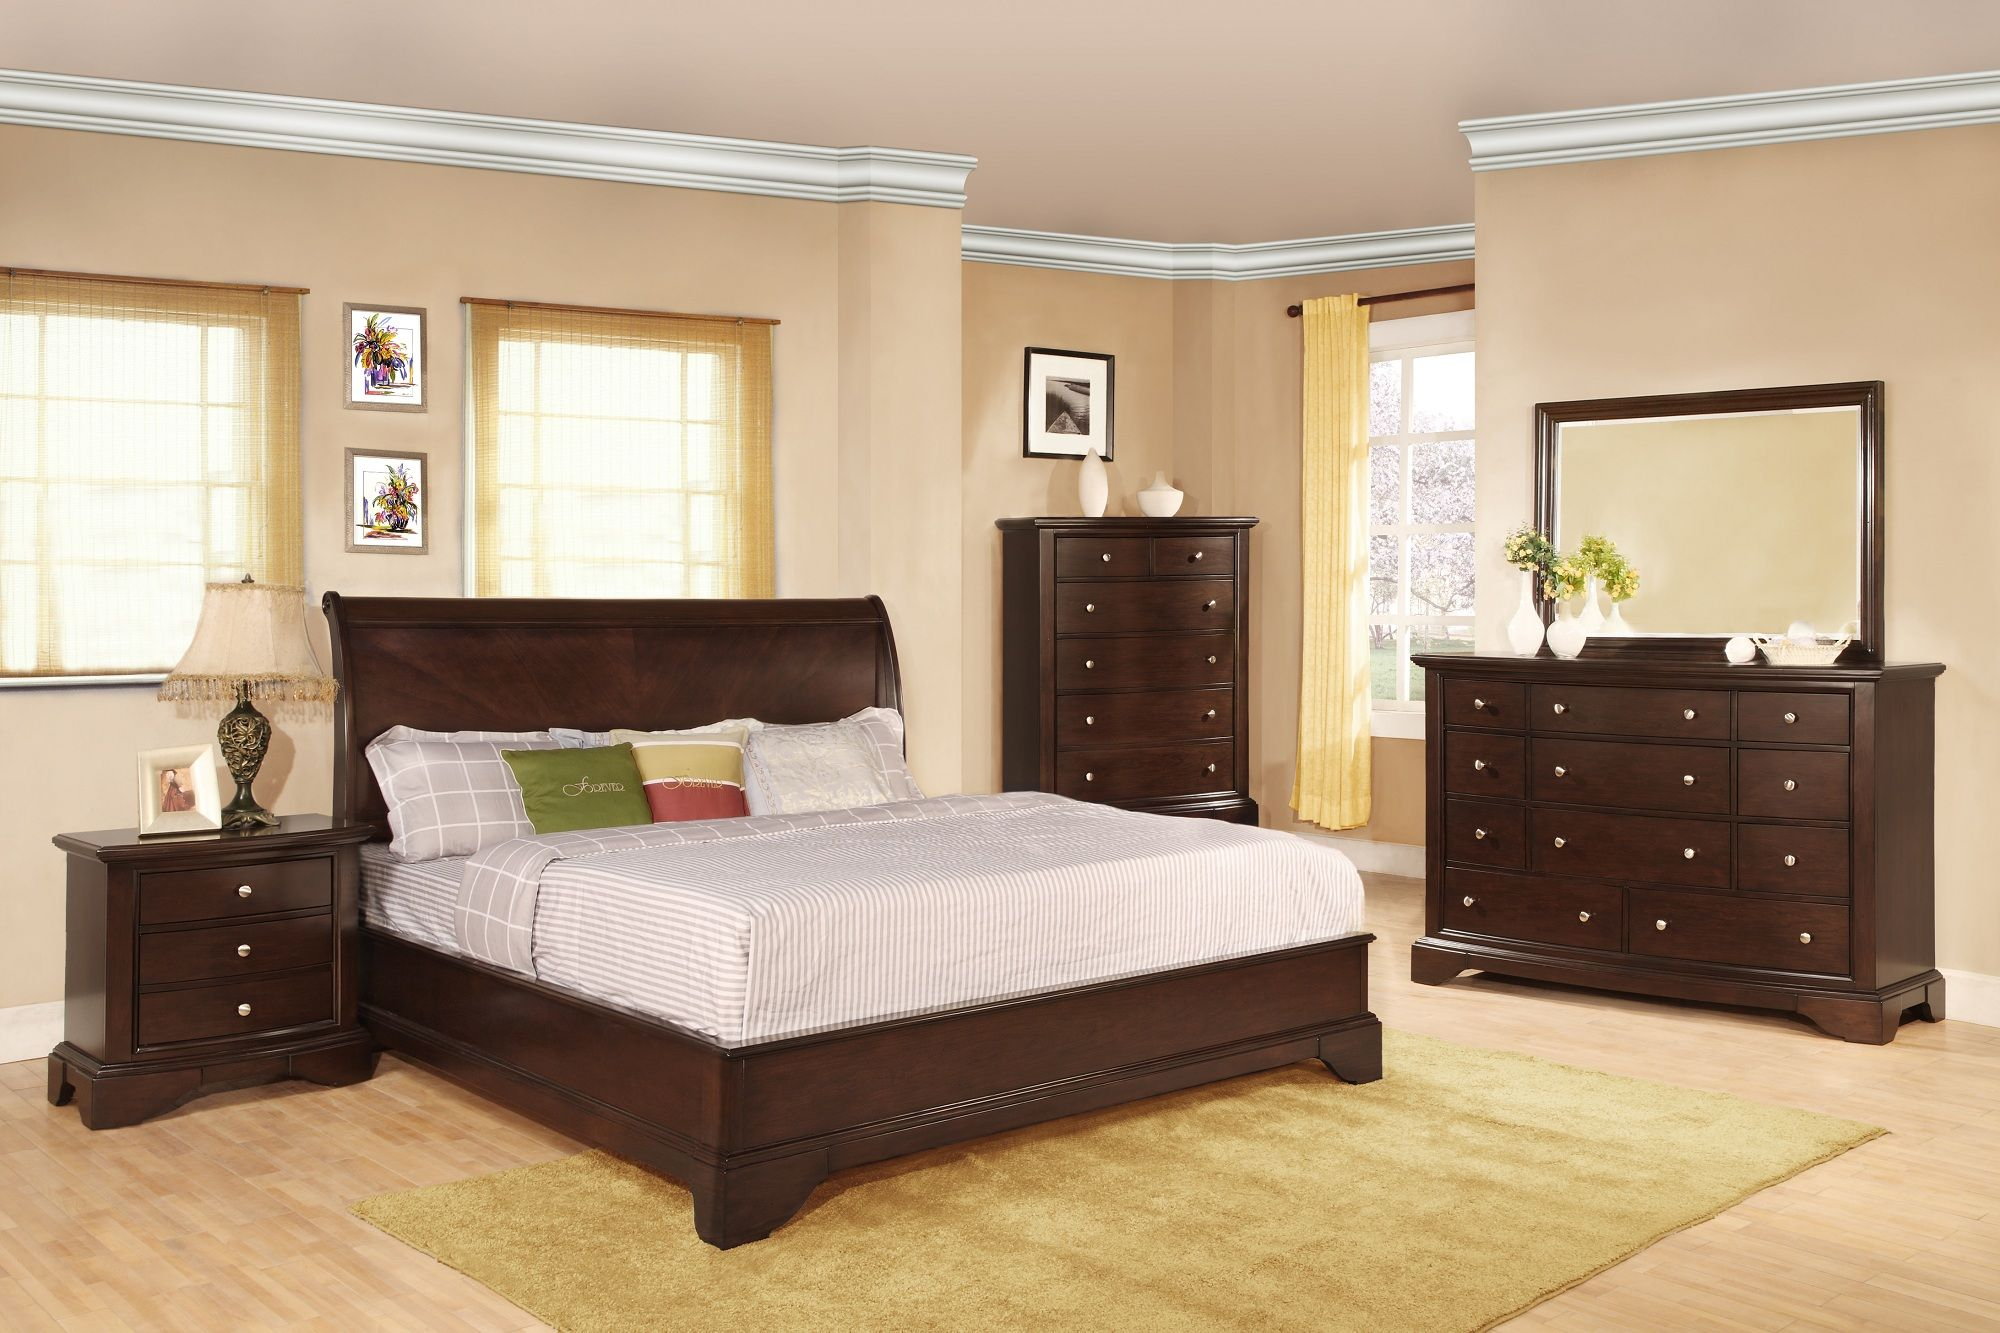 Elements International Hamilton Bedroom Set I Want This Bedroom